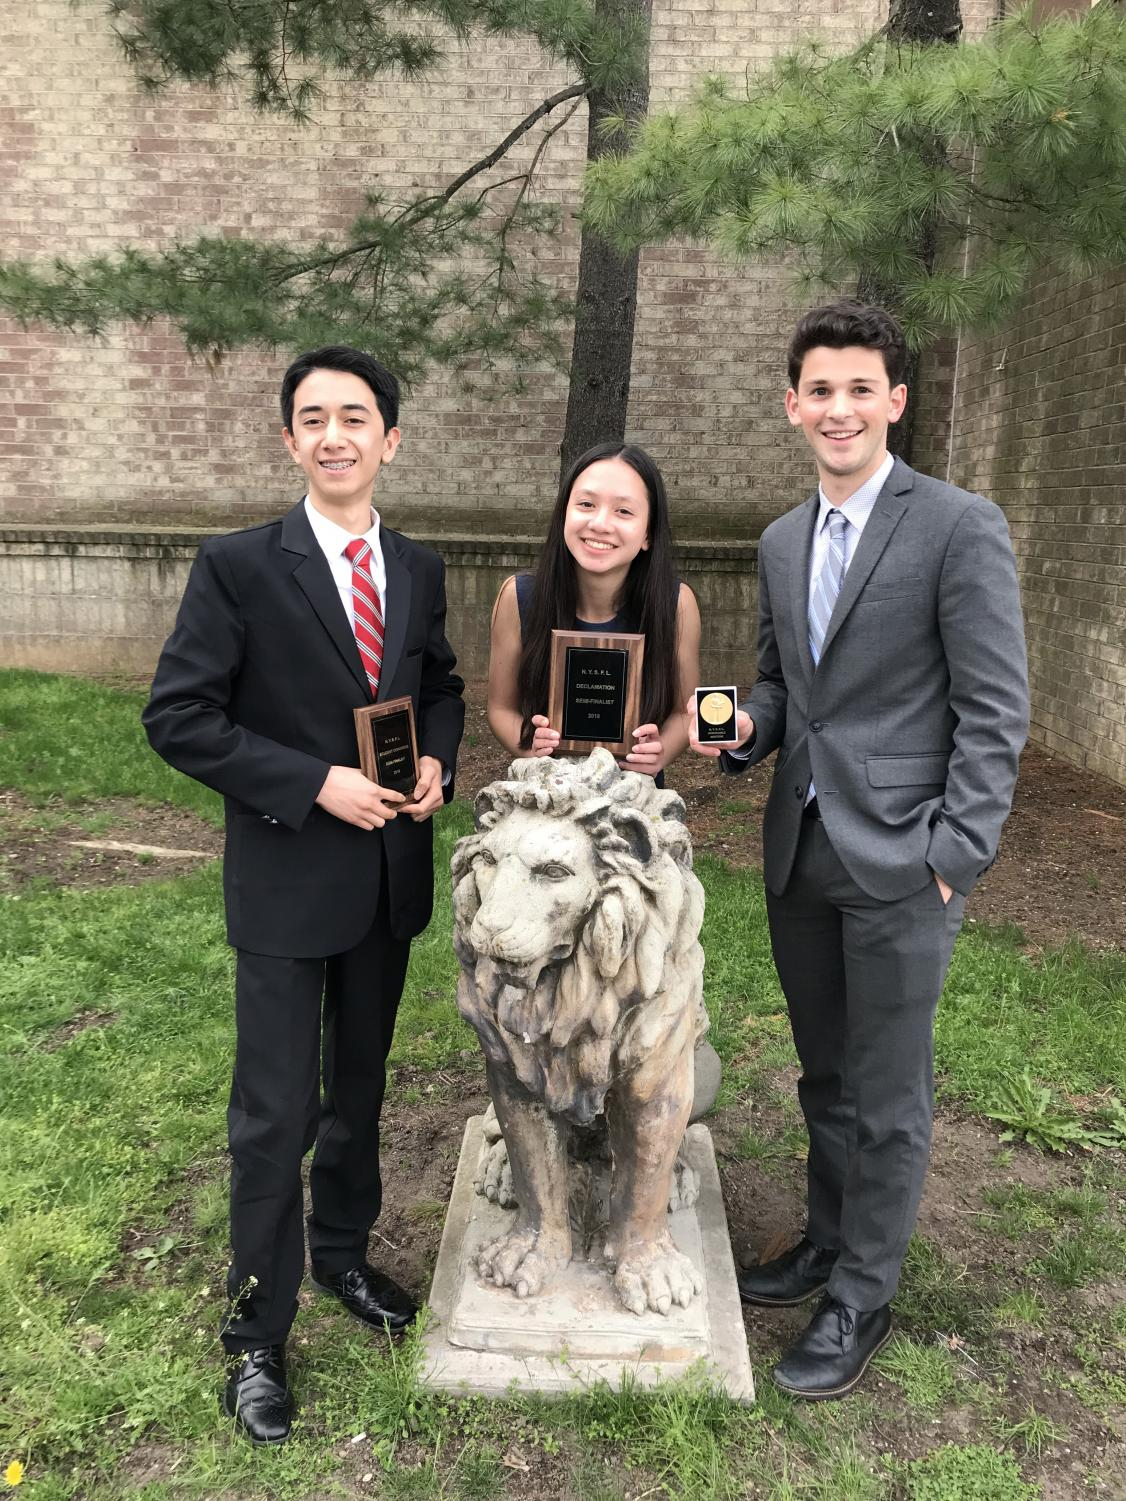 (l to r) Freshmen Isaac Blackburn and Sophia Leung, and junior Henry  Driesen celebrate their success at the NY State Championship.